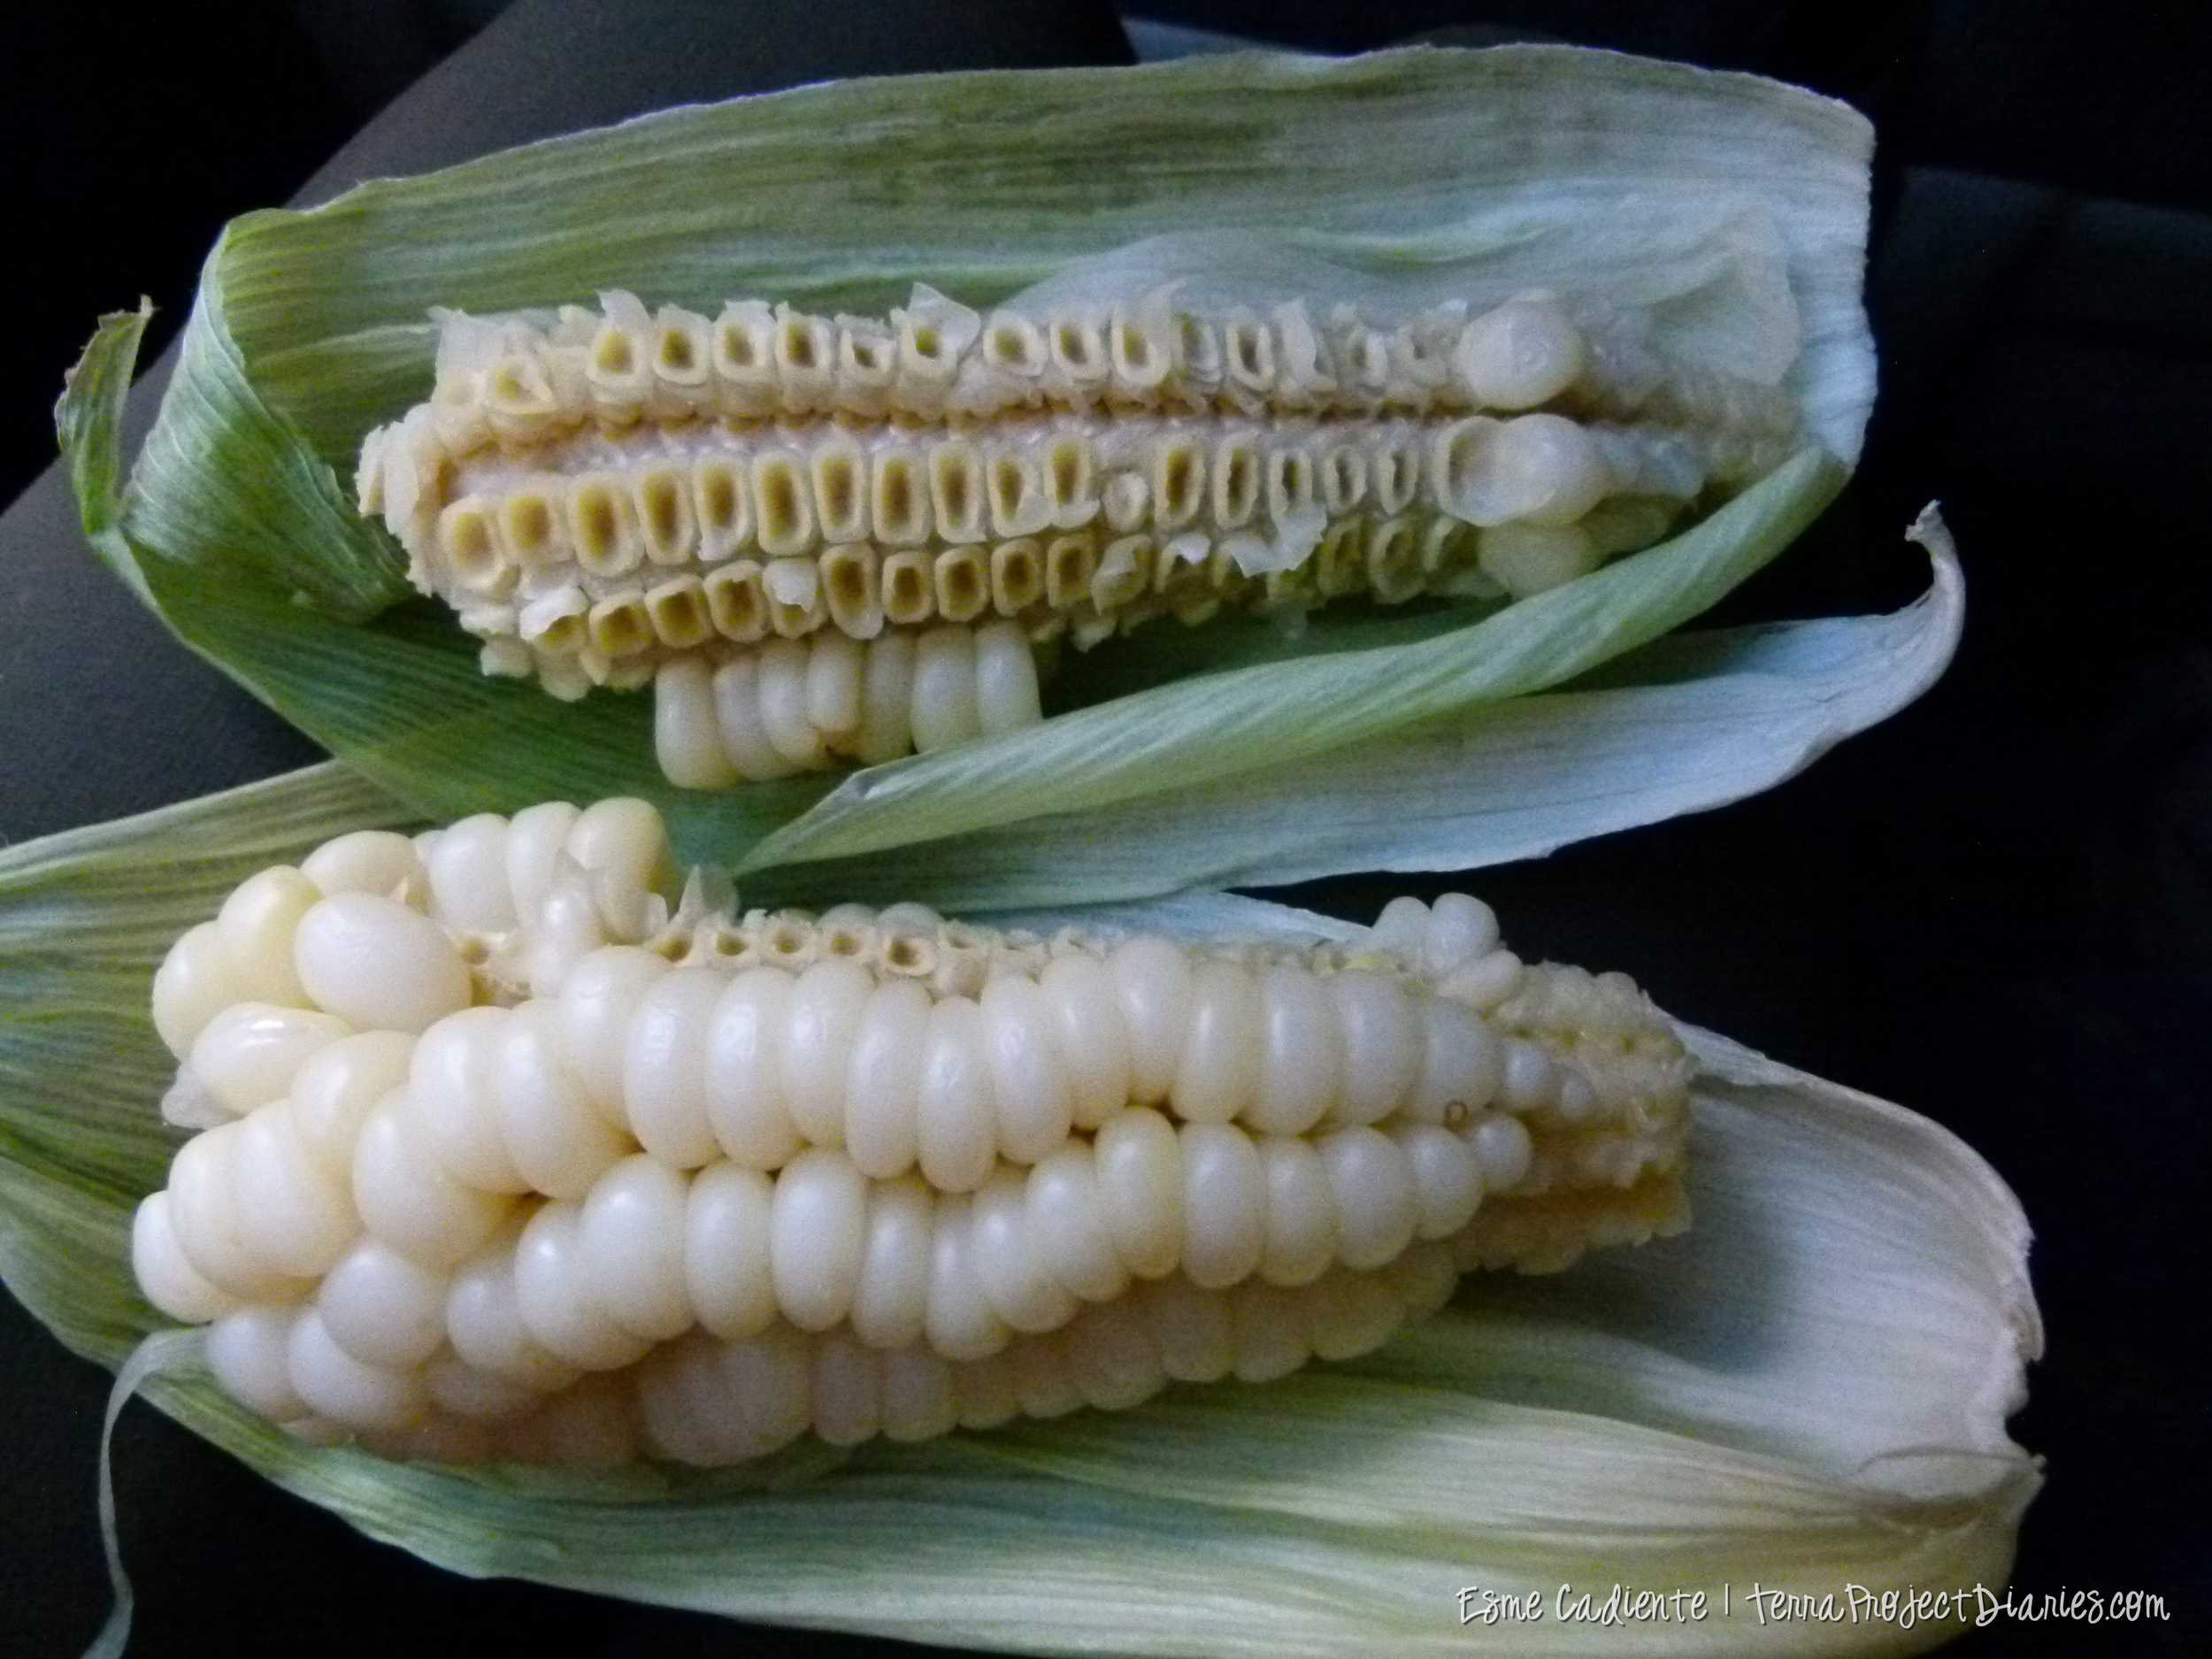 Choclo, an ancient strain of corn. Its fat, dry and meaty. Peru doesn't have a problem with mono-cropping!